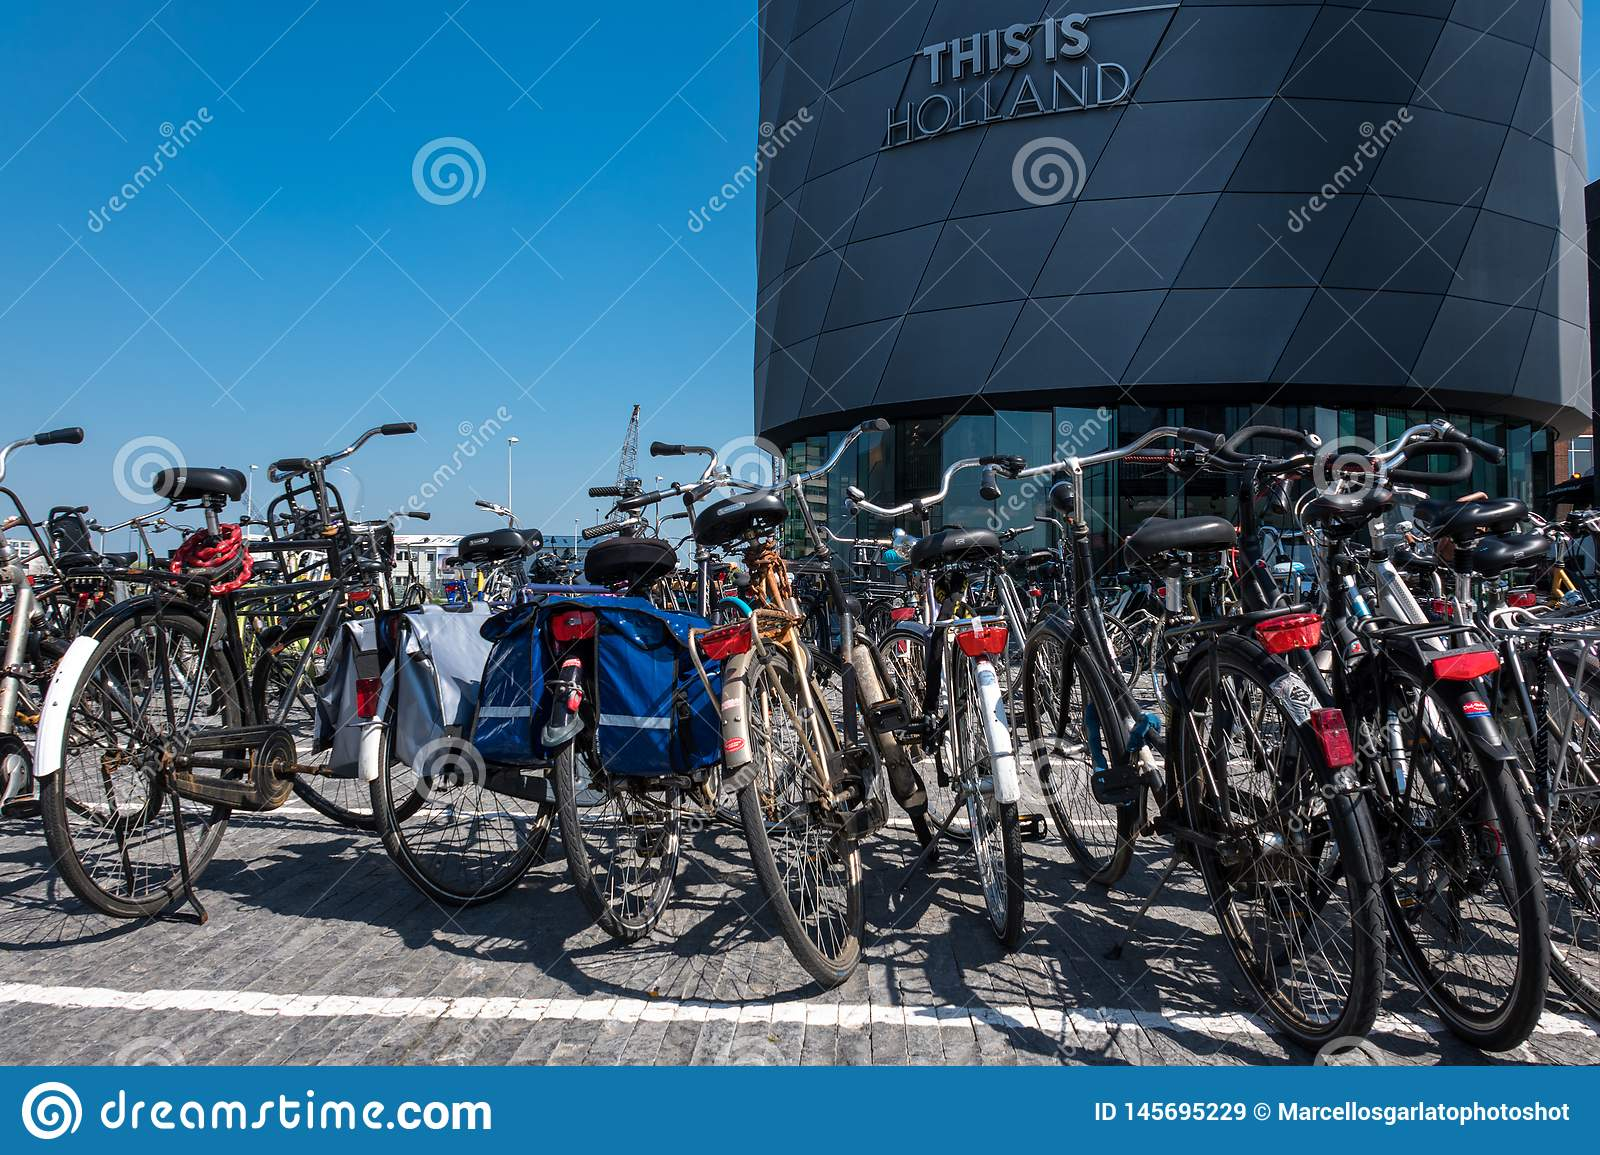 The bikes parking lot in front of the `This is Holland` building.